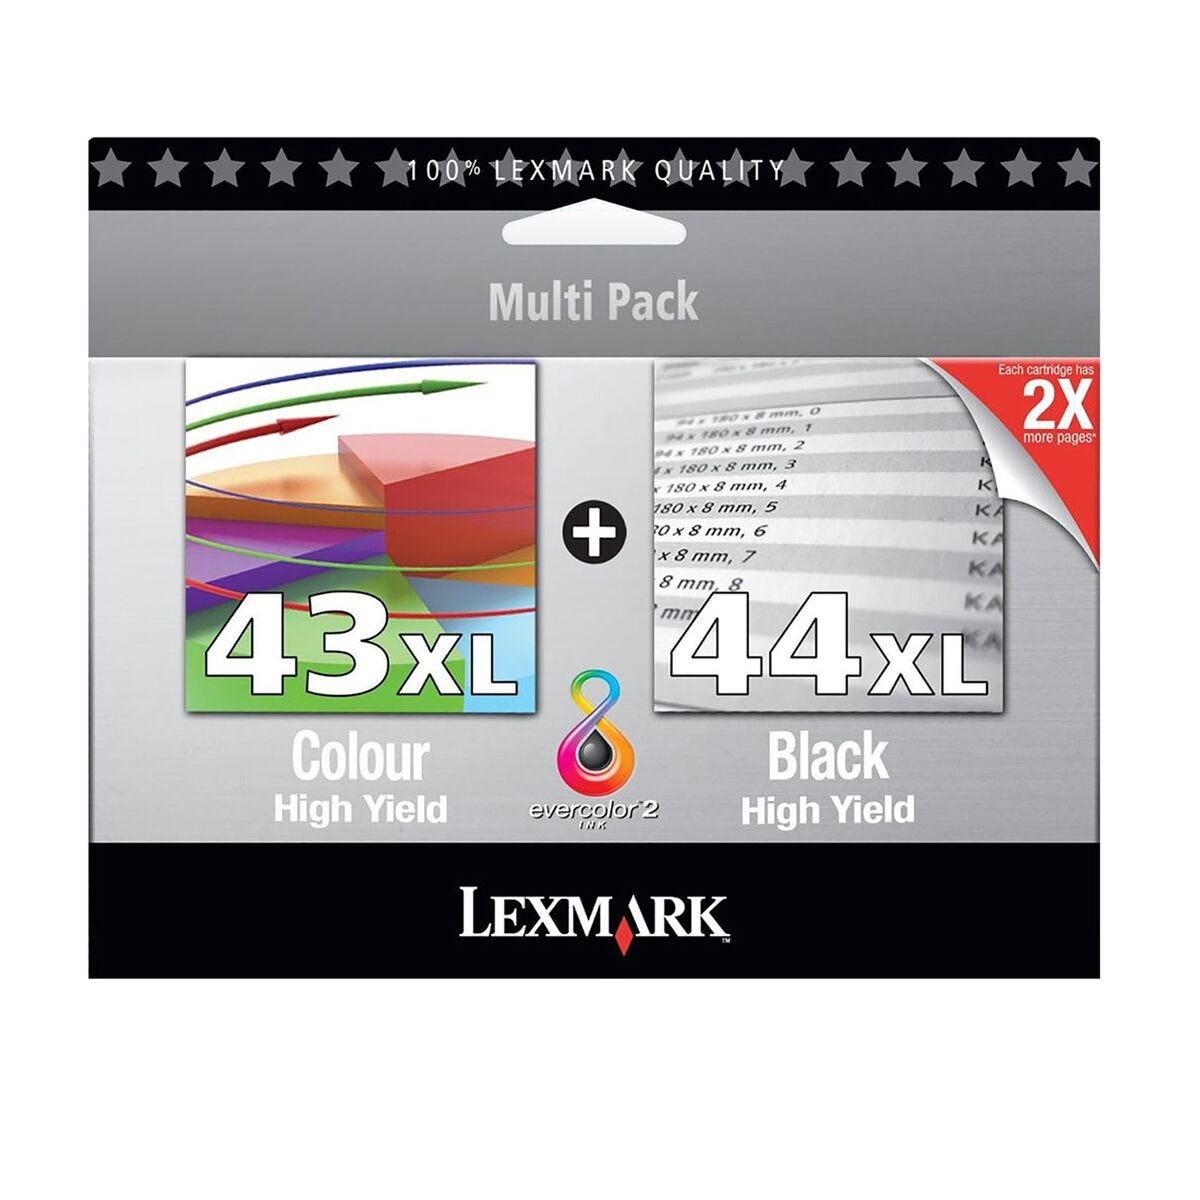 Lexmark 43XL and 44XL Black and Colour Cartridge